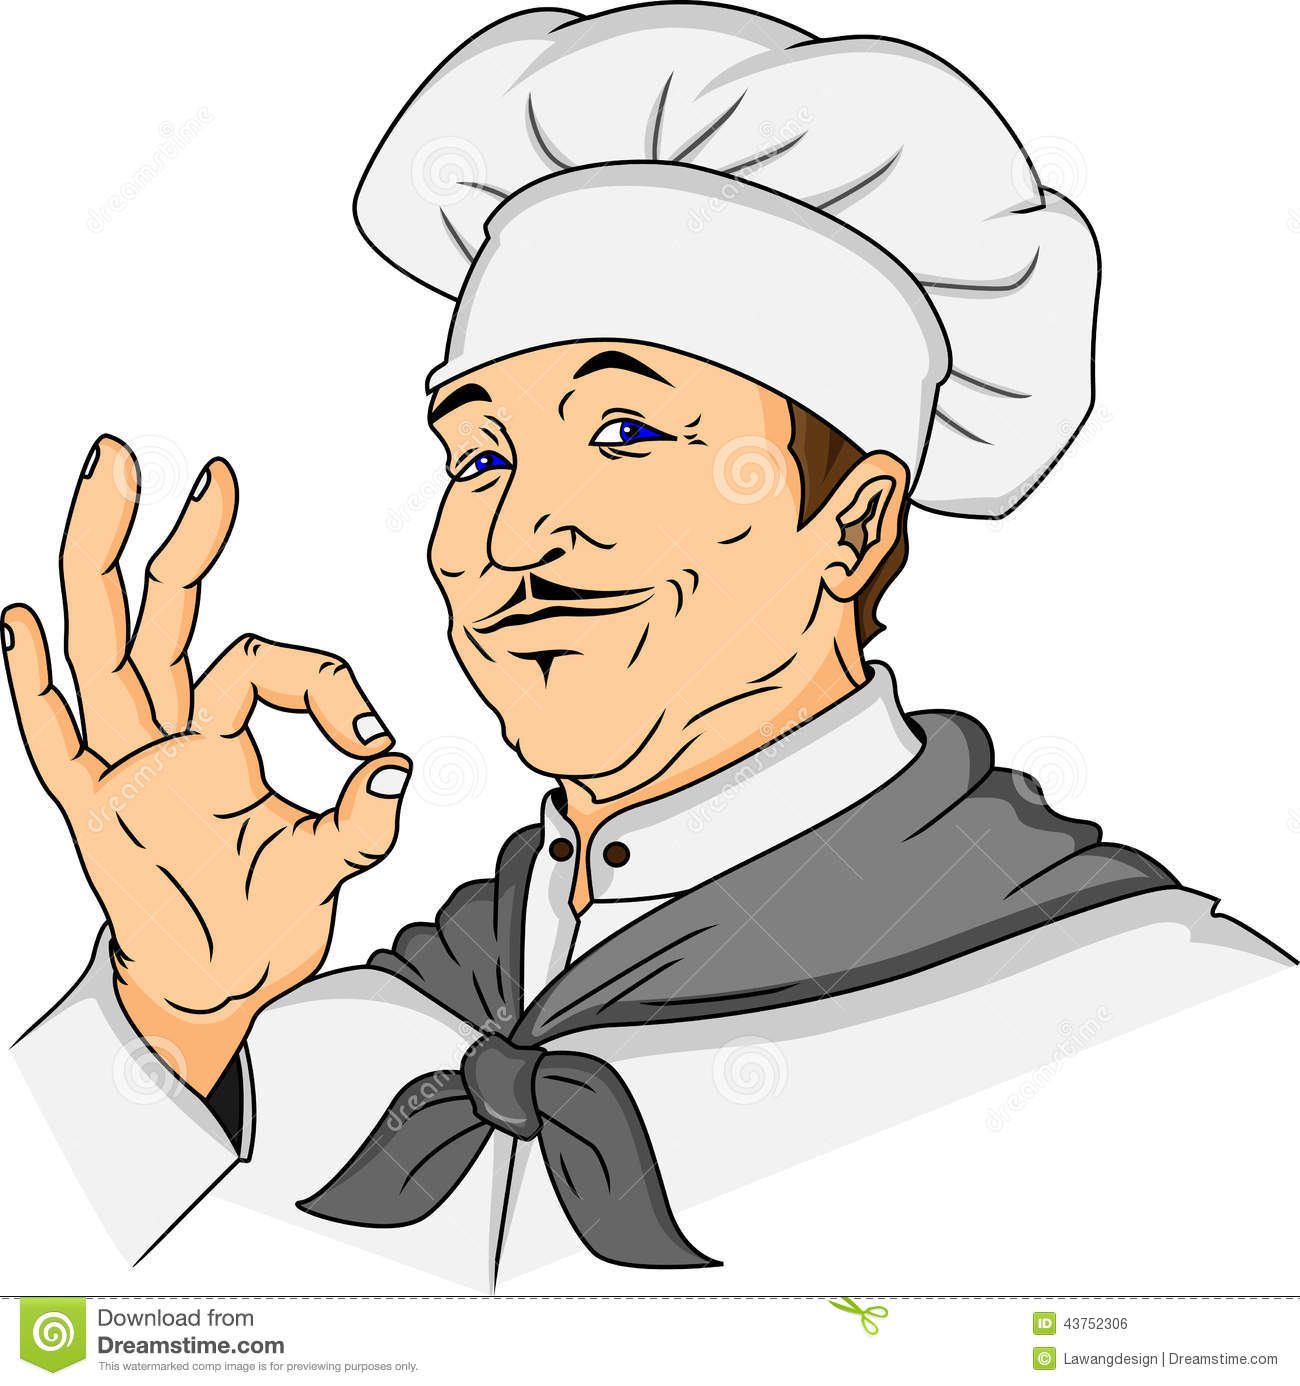 Mr chef clipart svg freeuse library Chef Stock Vector - Image: 43752306 svg freeuse library